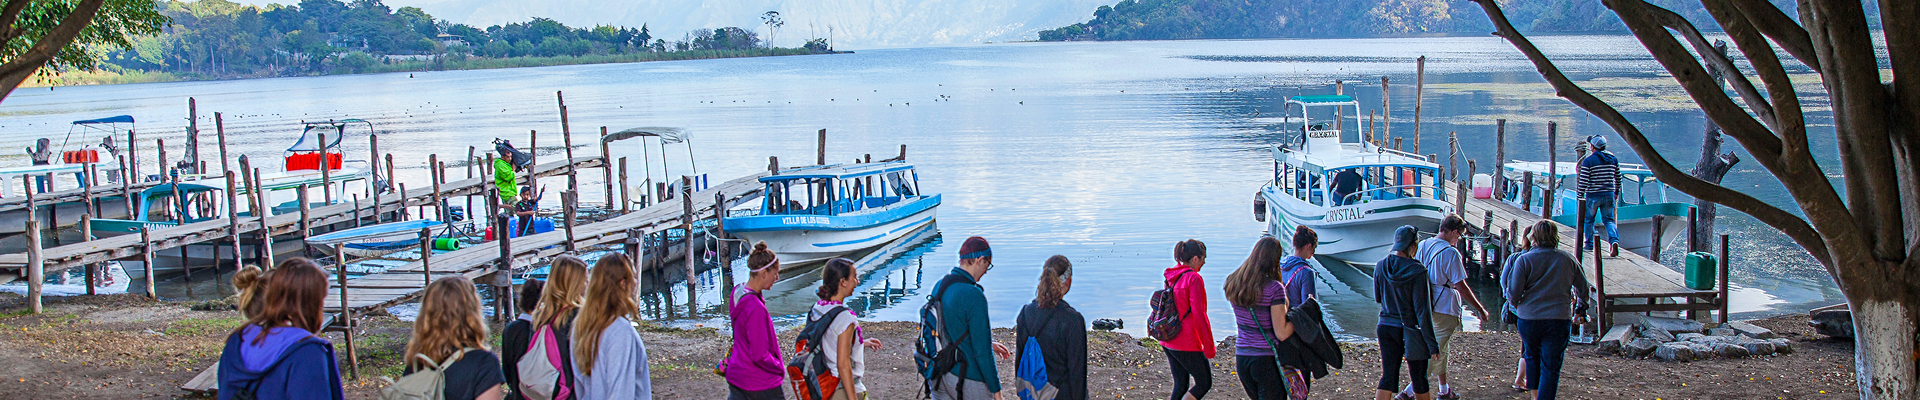 Students boarding boat in Guatemalan village